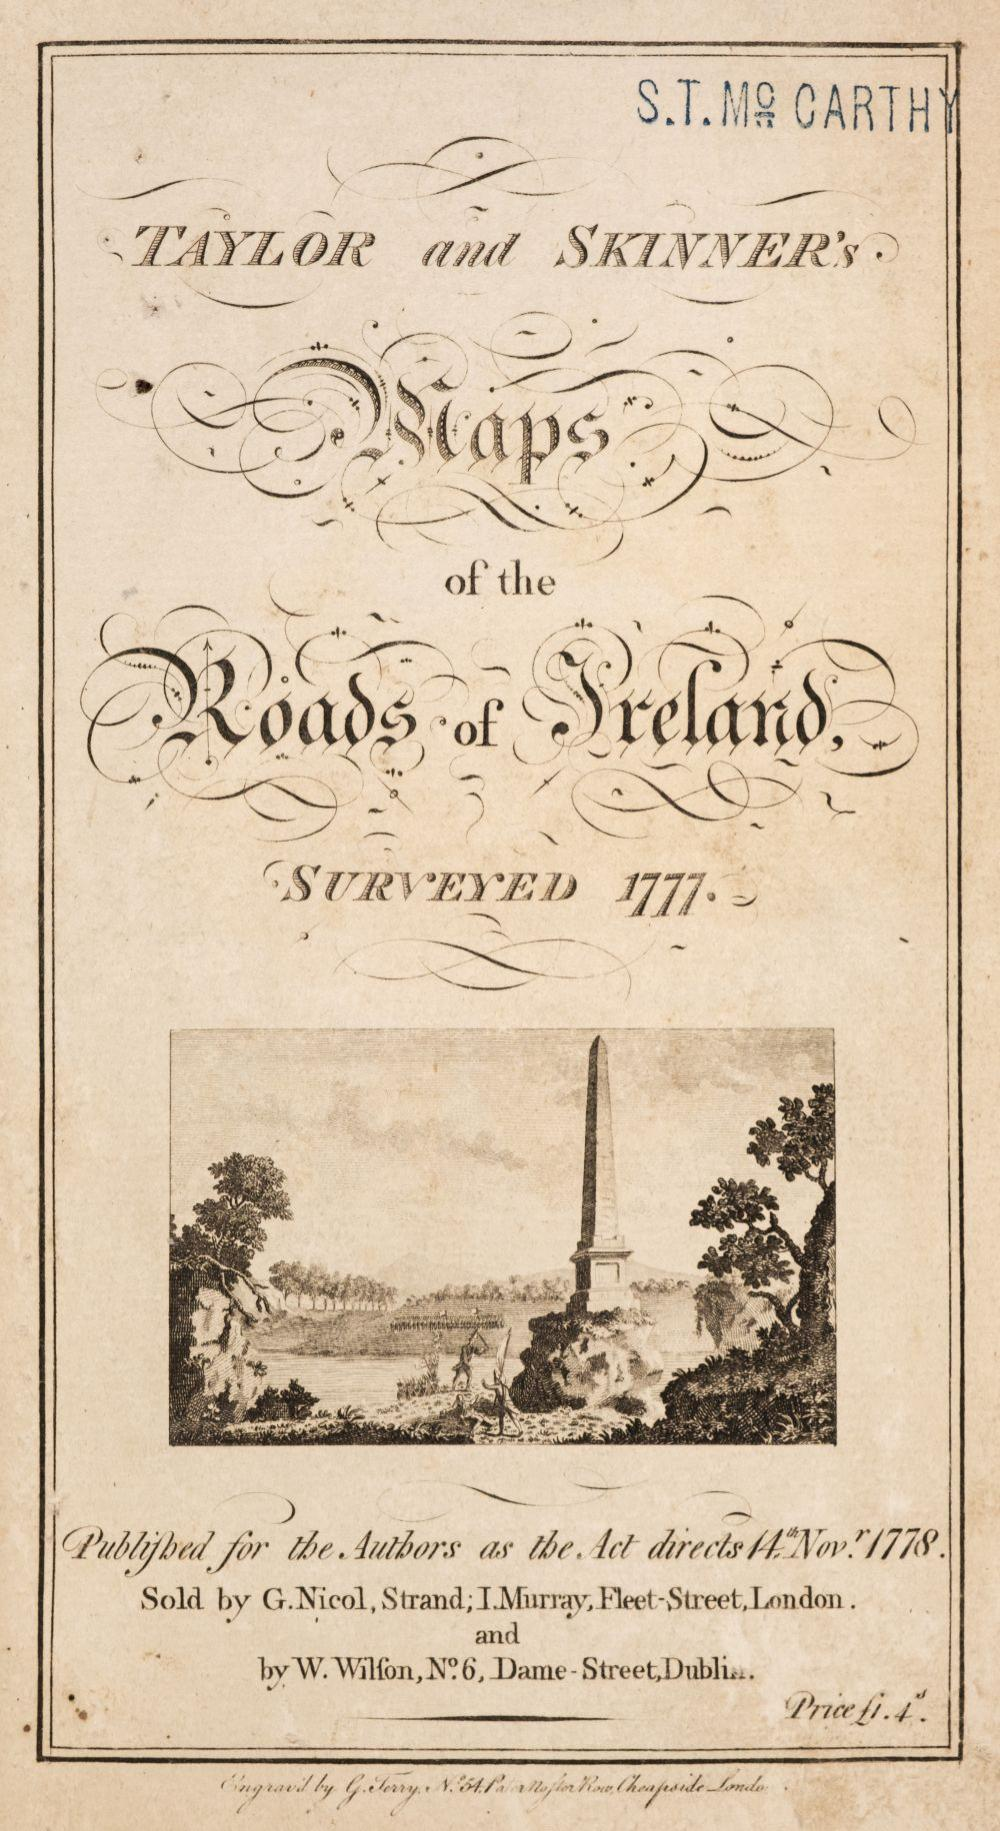 Taylor (George) & Skinner (Andrew). Maps of the Roads of Ireland, London: For the Author, 1778